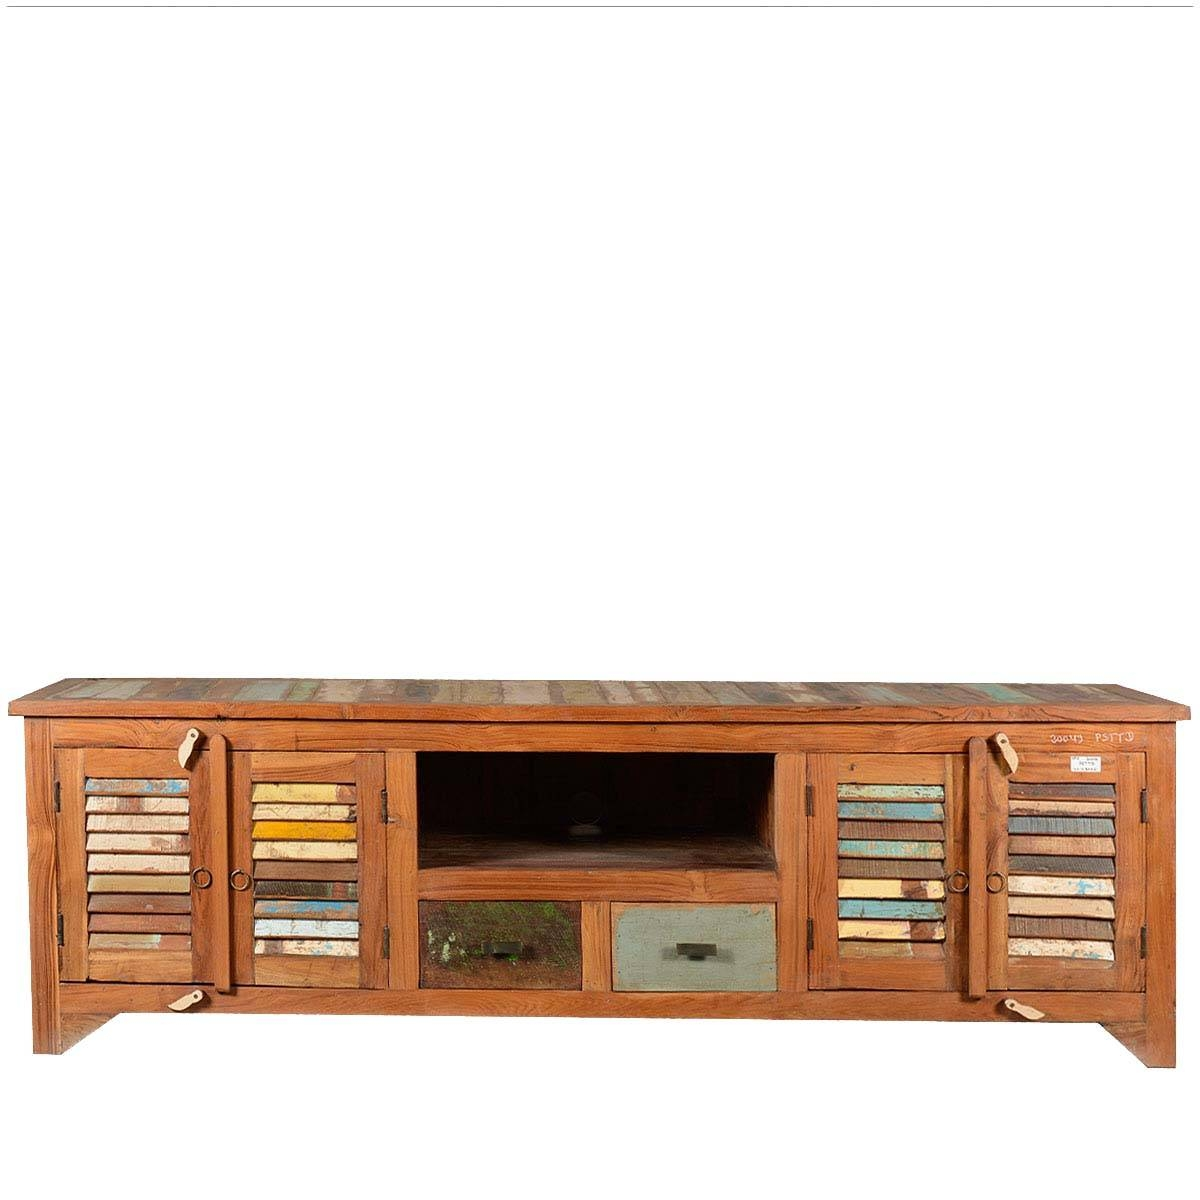 Rustic Reclaimed Wood Rainbow Shutter Doors Tv Stand Media Console with Recycled Wood Tv Stands (Image 10 of 15)